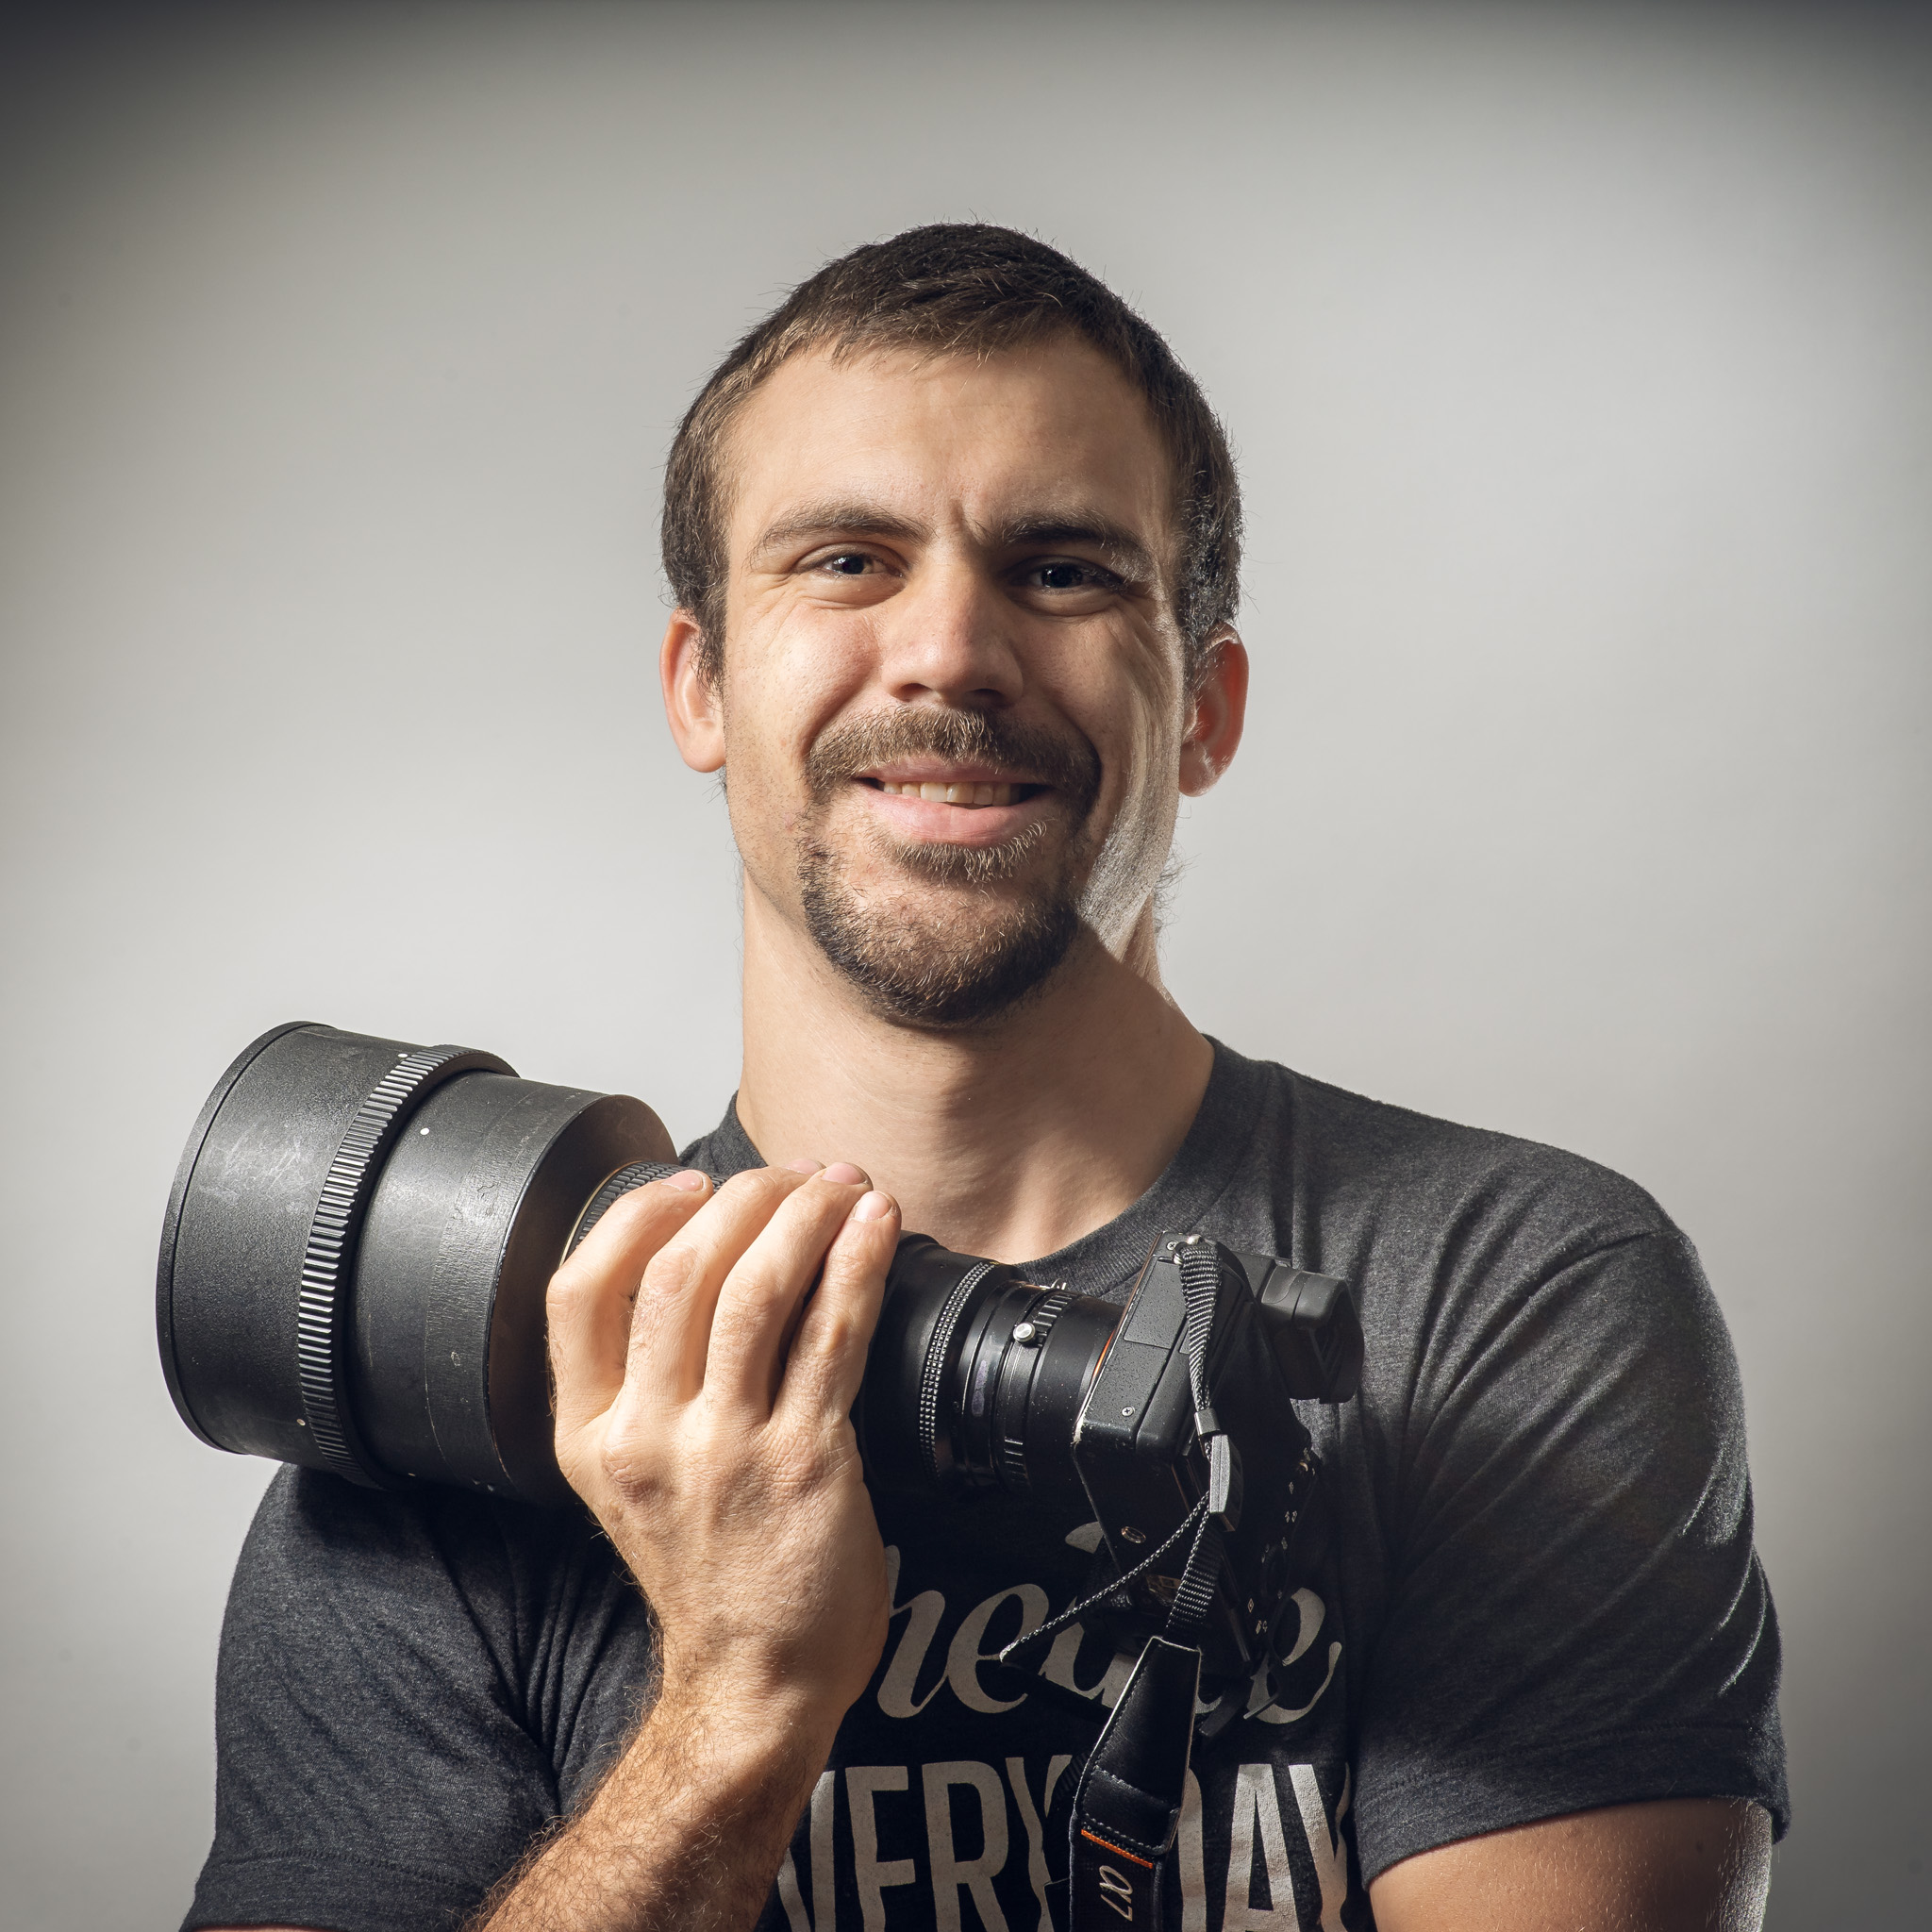 Hi, I'm Phillip Haumesser - I am a Dad and husband first off. I started taking photos of my kids in 2015 and became obsessed with photography and post-processing. I'm completely self taught and it took me years to get where I am. My work has since been featured all around the world at places like The Huffington Post, Daily Mail, Business Insider, My Modern Met, PetaPixel and many more. This has become one of those organic passions that grew into way more than a hobby. I'm asked all of the time by beginners and professionals alike for advice and training. So I decided to start making courses and classes online to teach everything I've learned and save others years of guess work.